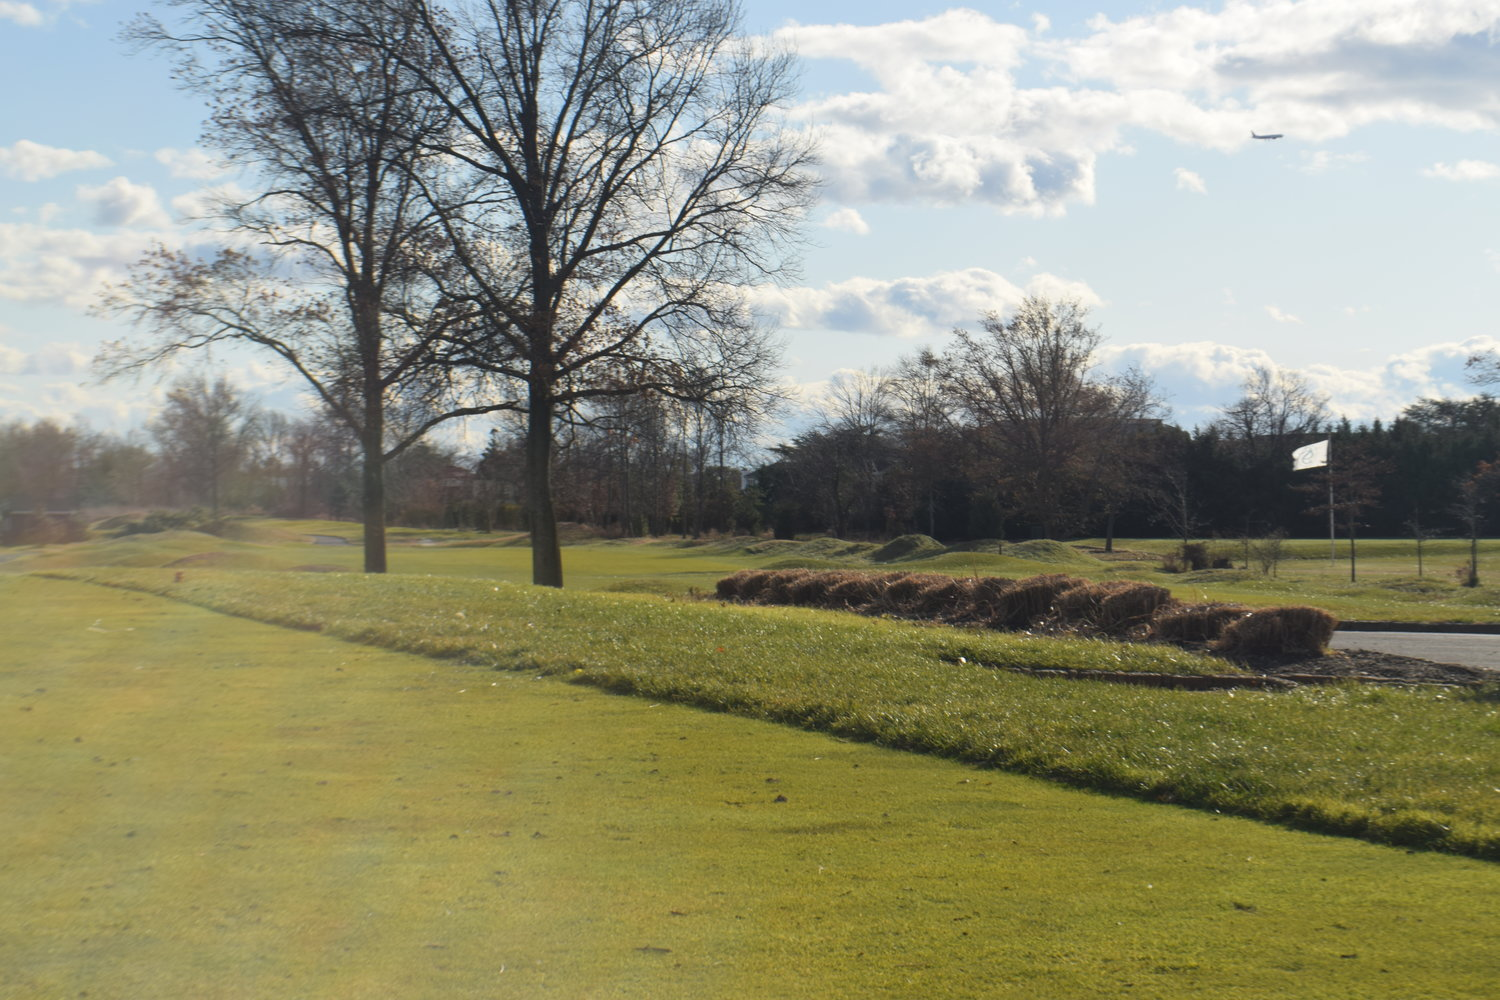 Seawane's golf course will undergo some improvements before the new season begins.